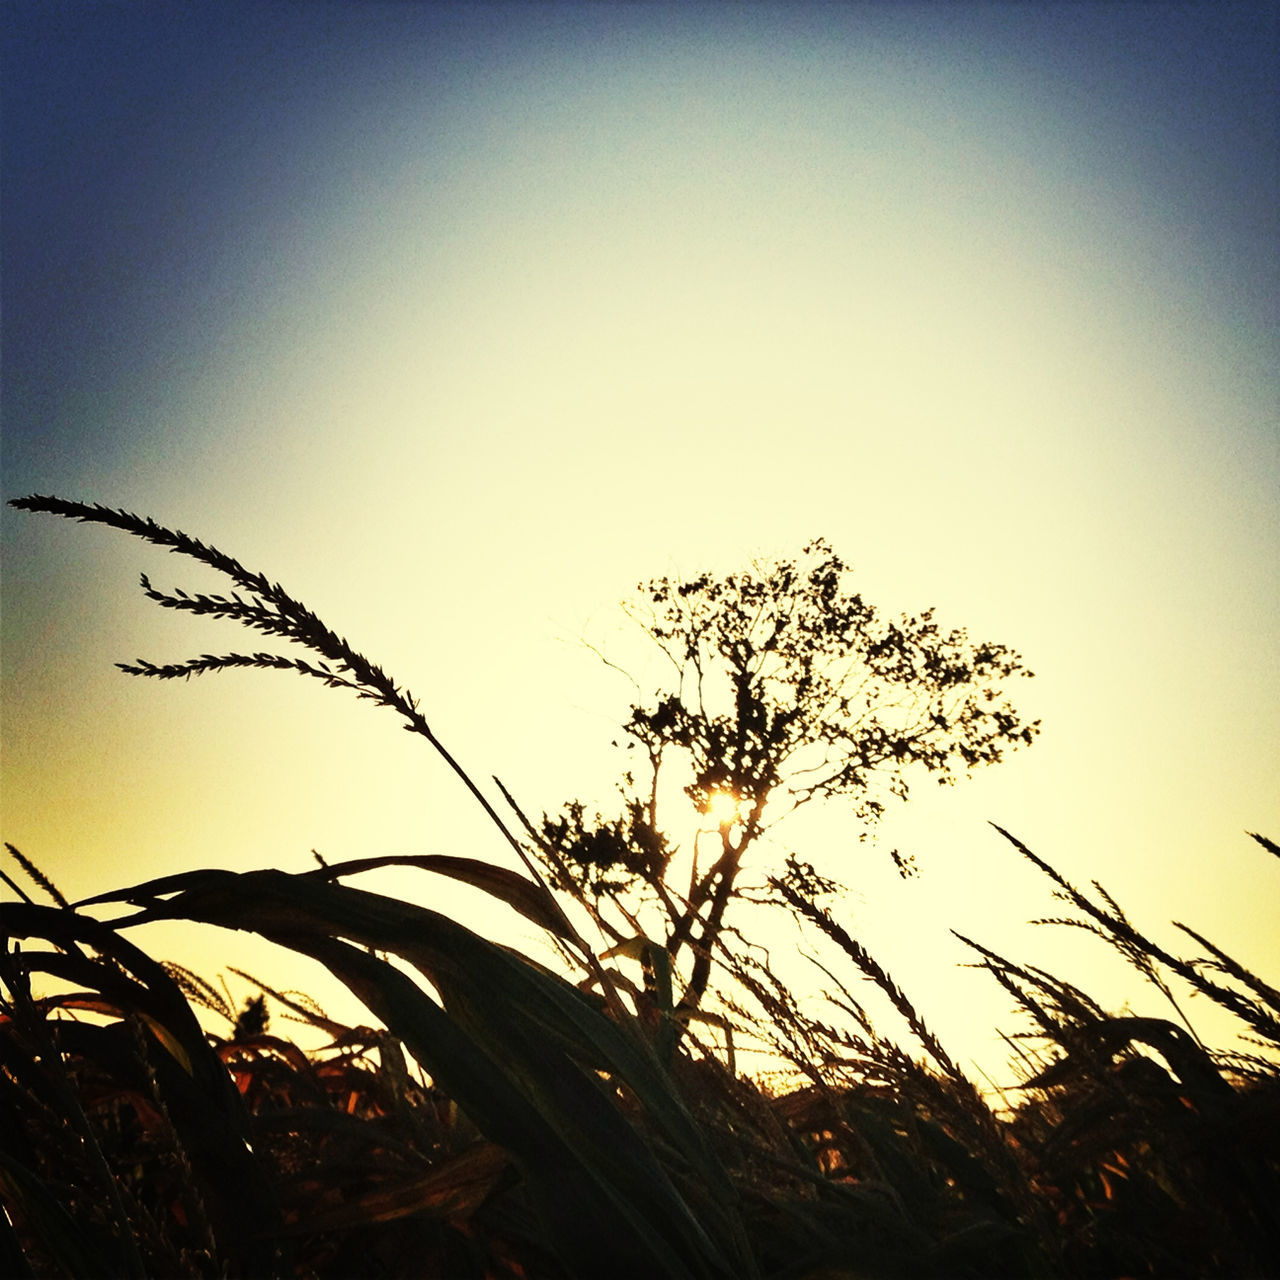 growth, nature, plant, sunset, clear sky, outdoors, no people, sky, beauty in nature, rural scene, grass, day, close-up